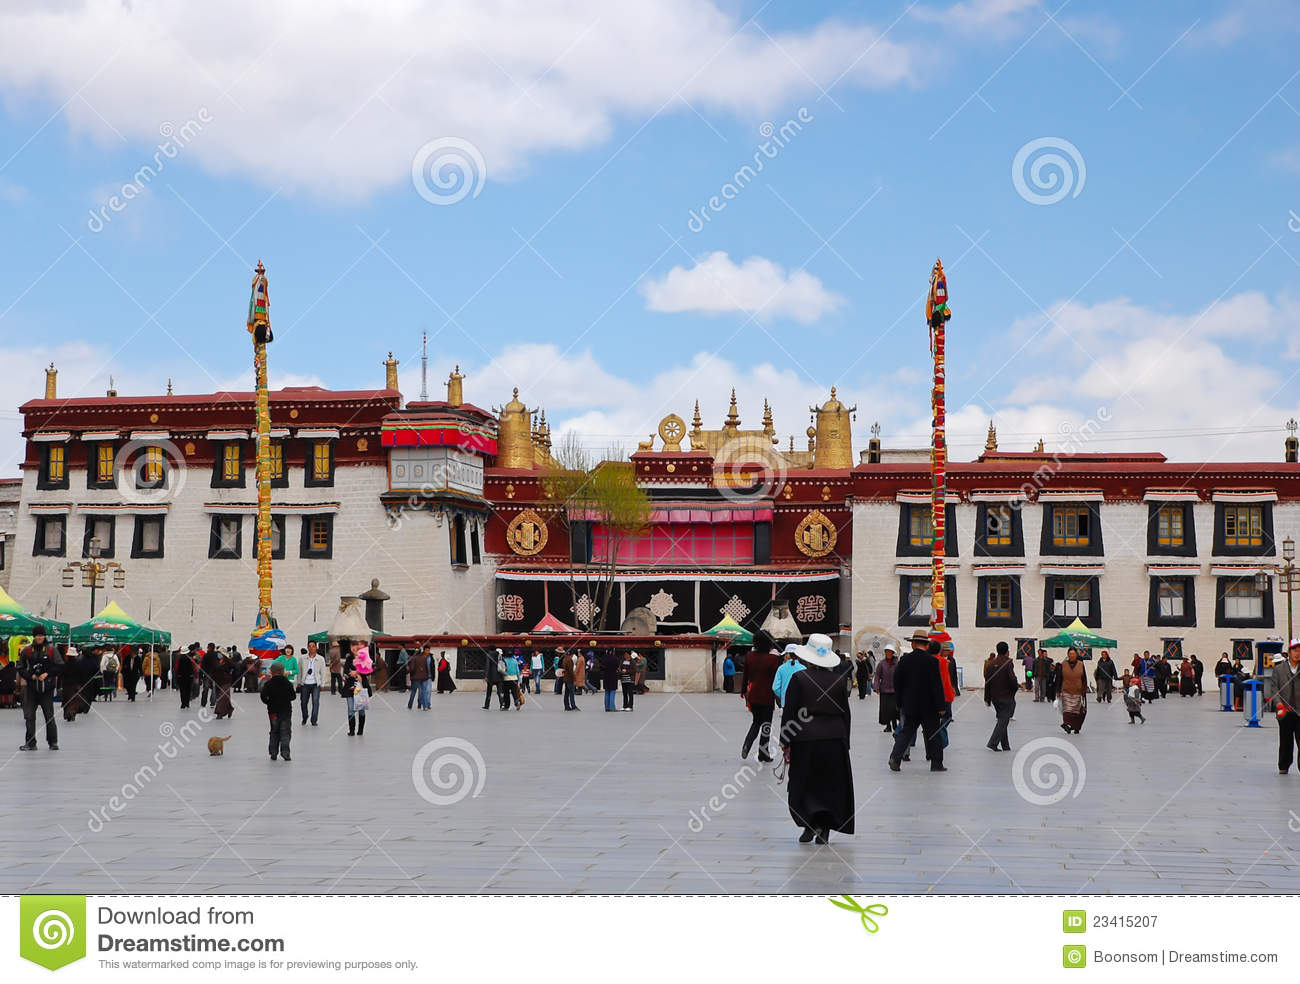 Jokhang temple in Lhasa, Tibet. It